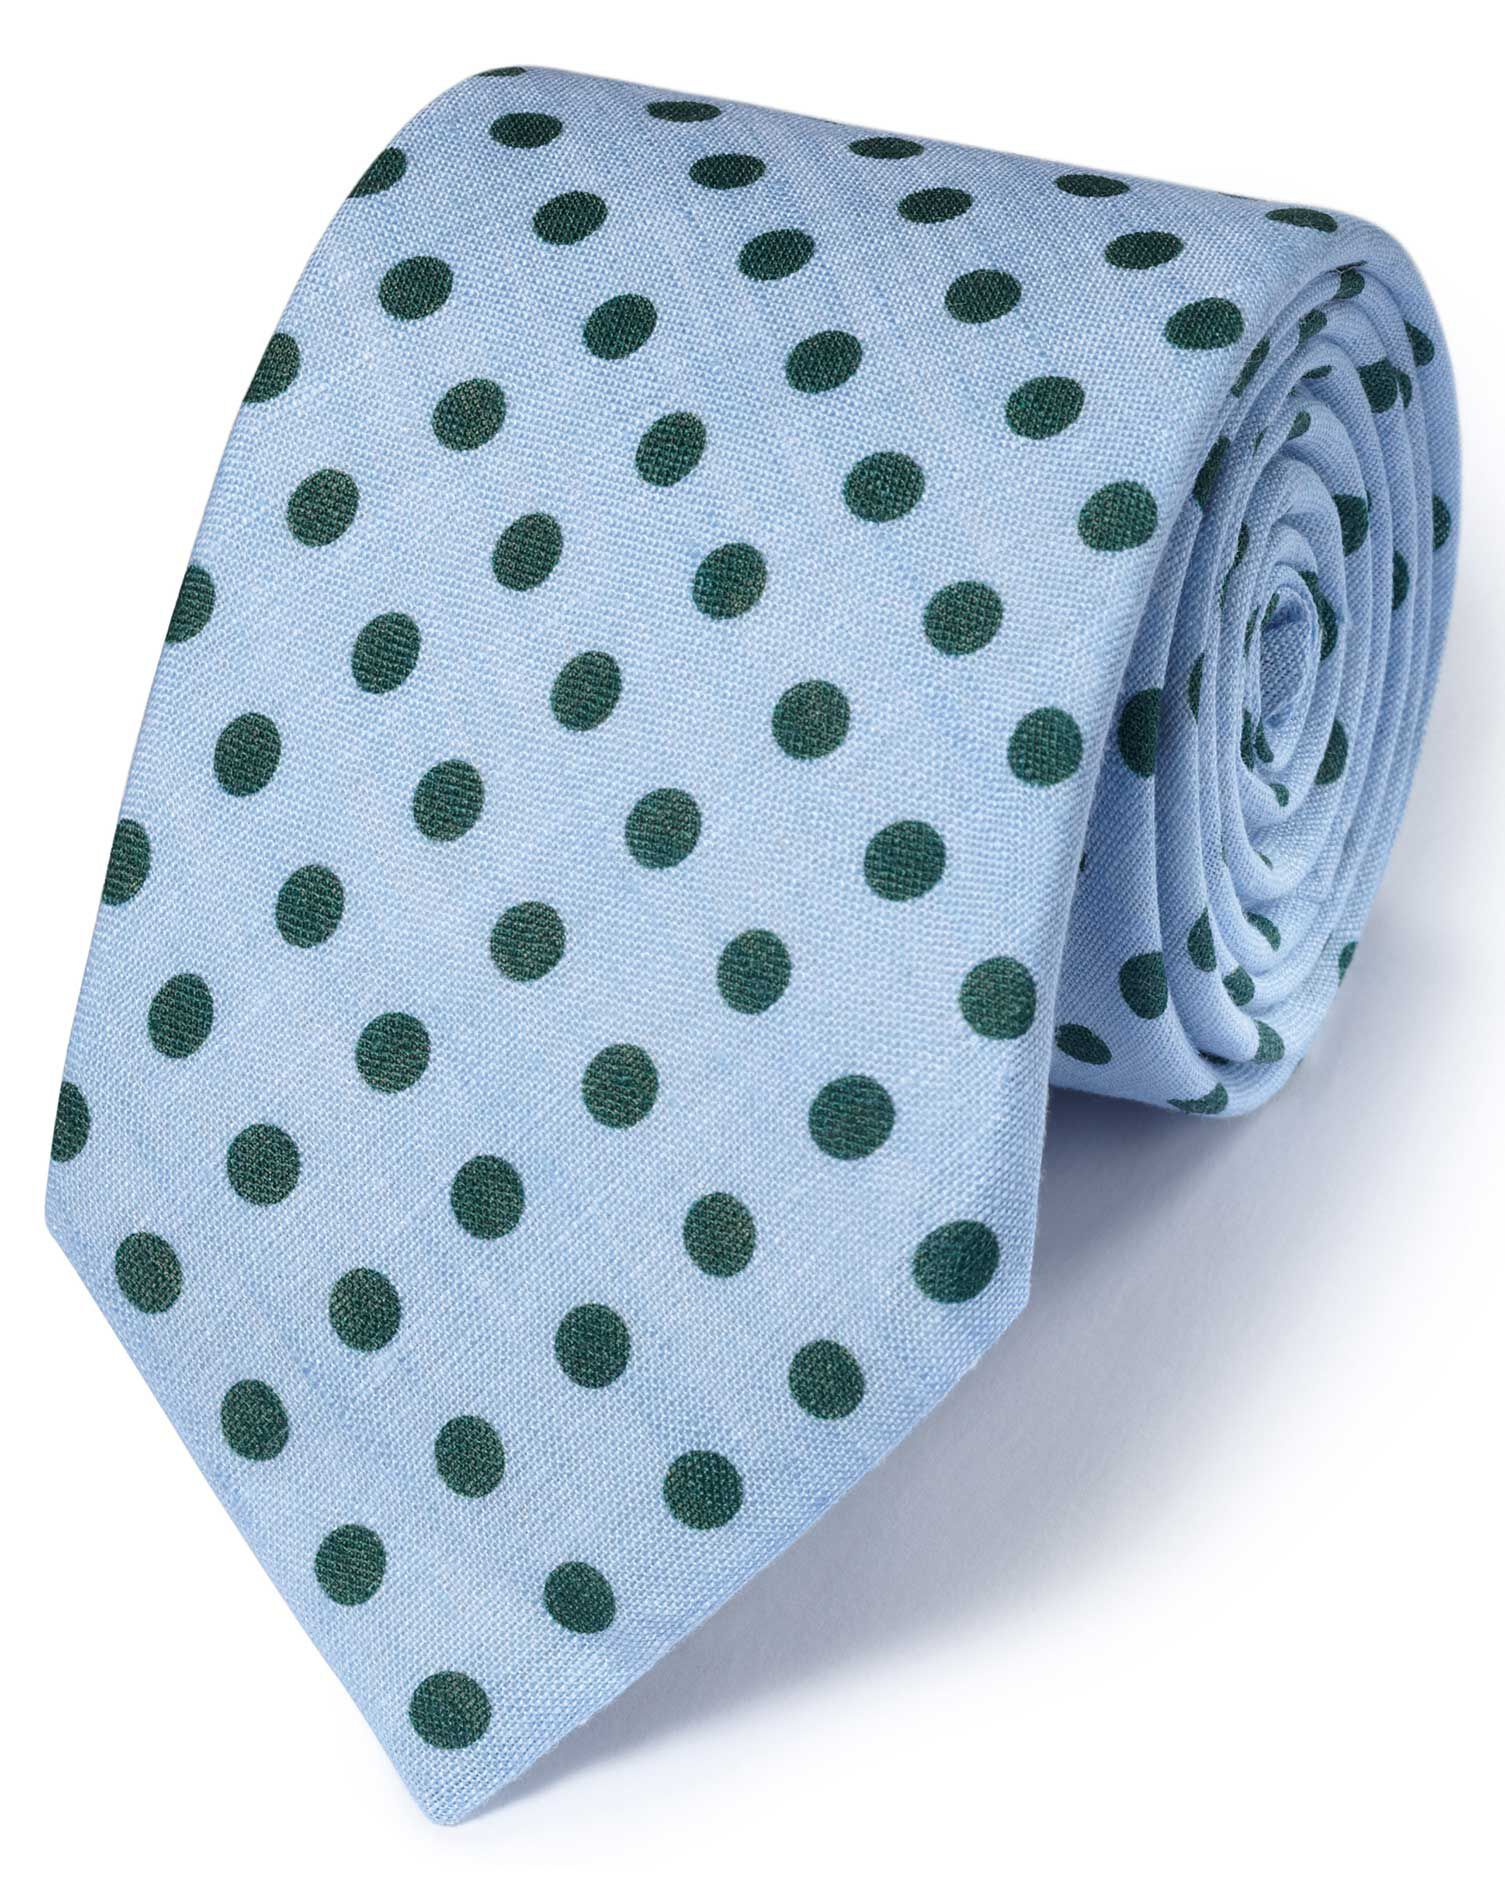 Sky and Green Linen Classic Chambray Tie Size OSFA by Charles Tyrwhitt